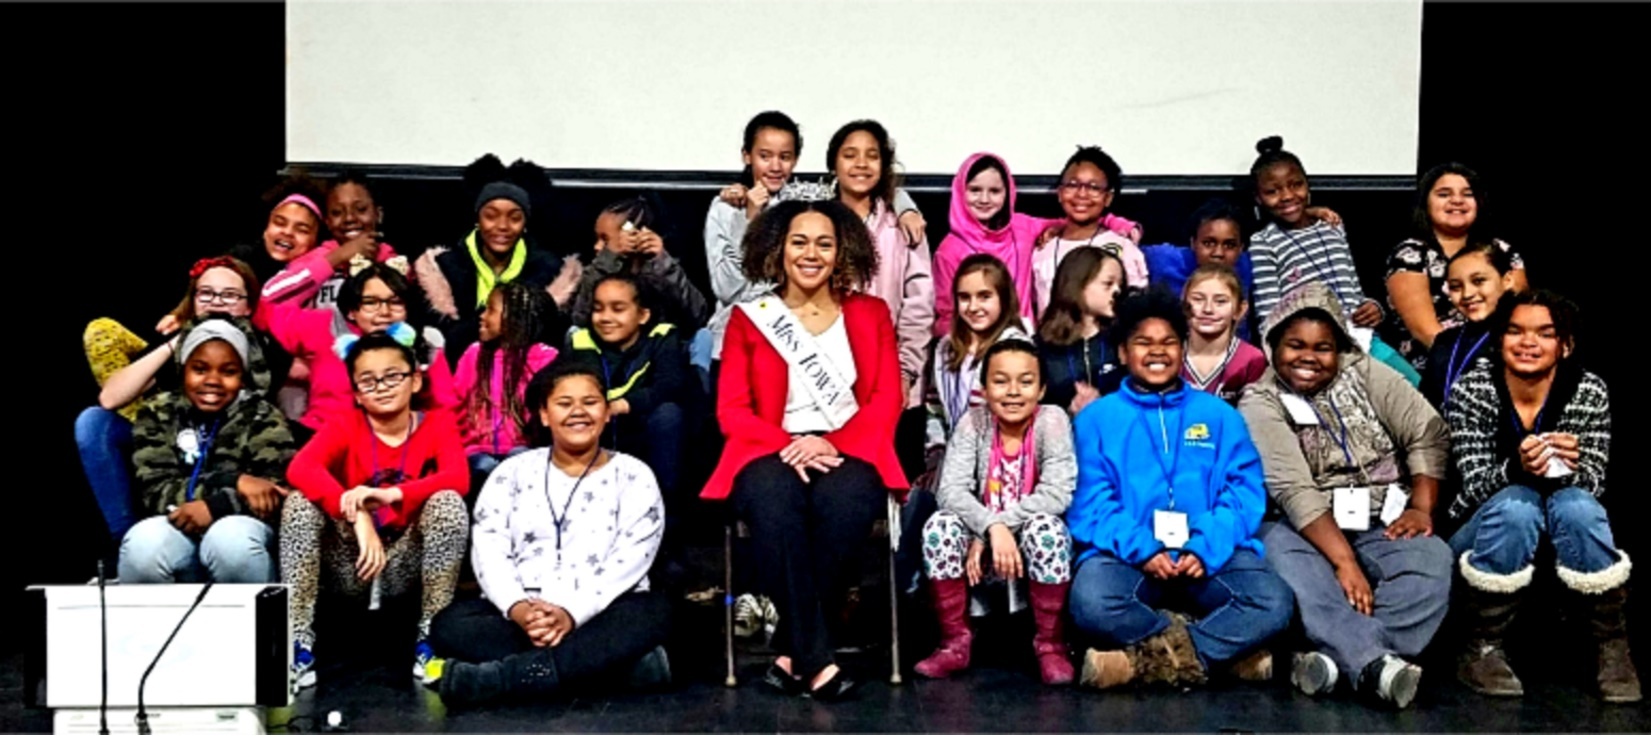 Miss Iowa 2018 posing with students at Madison Elementary School in Davenport, Iowa